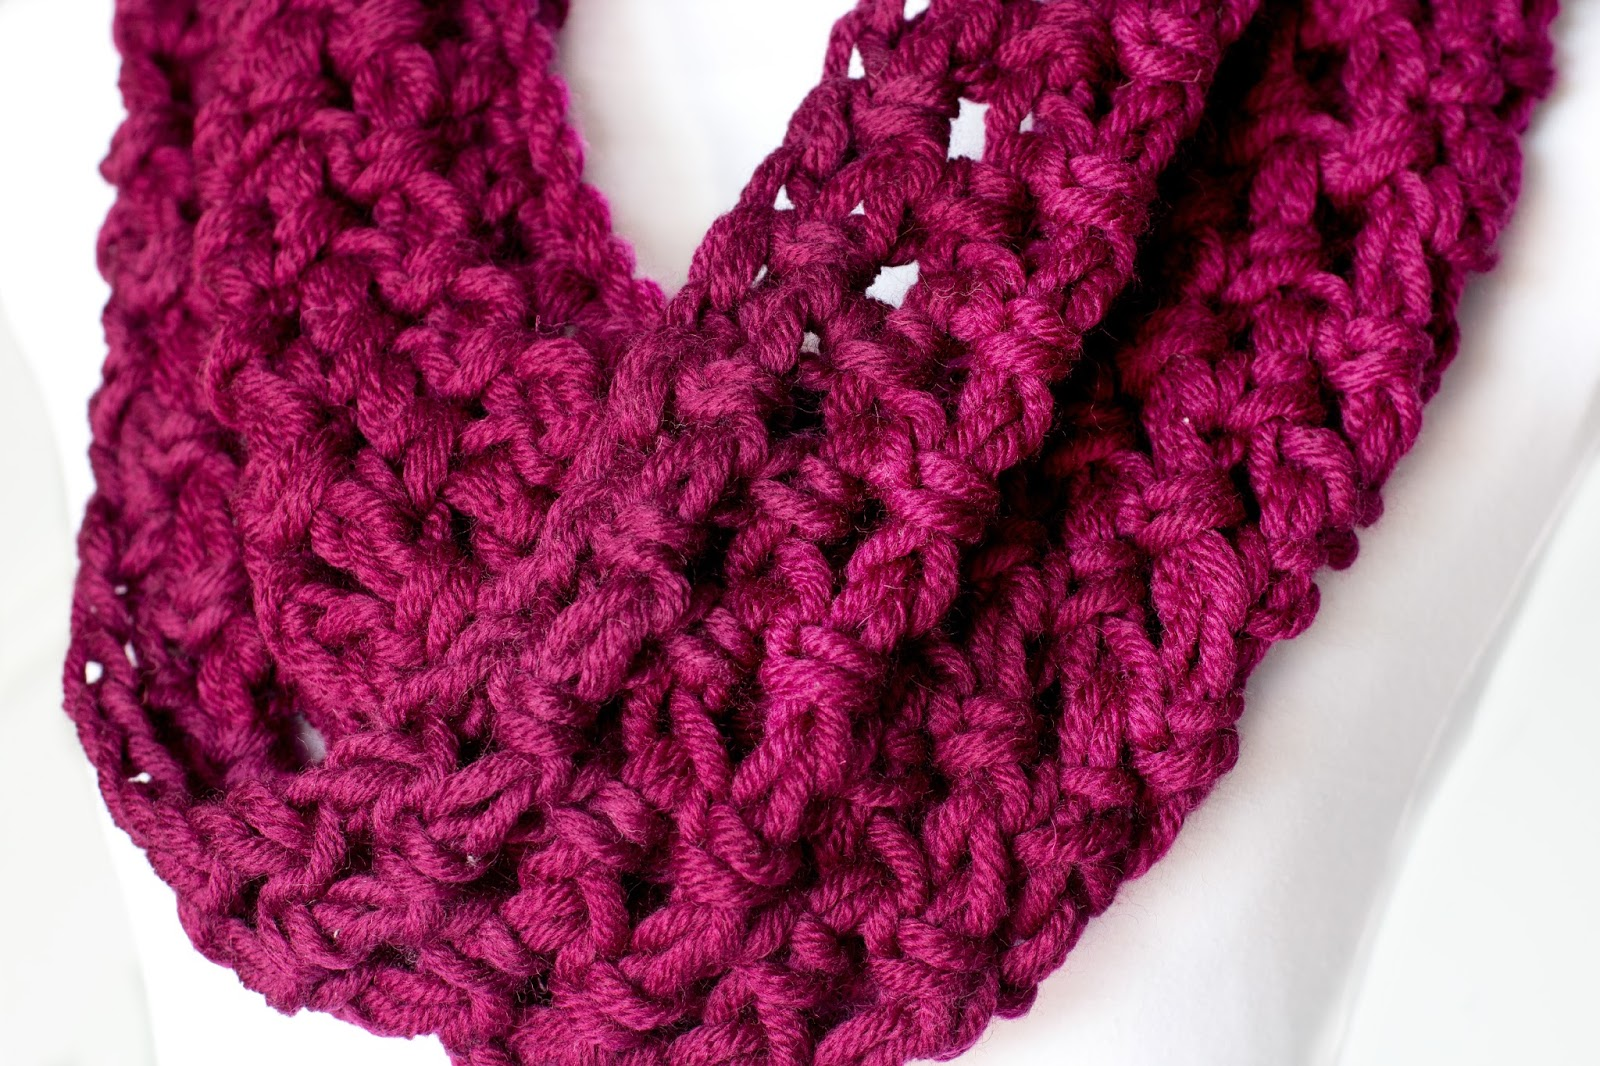 Free Crochet Yarn : ... Honey Craft, Crochet, Create: Basic Chunky Cowl Crochet Pattern